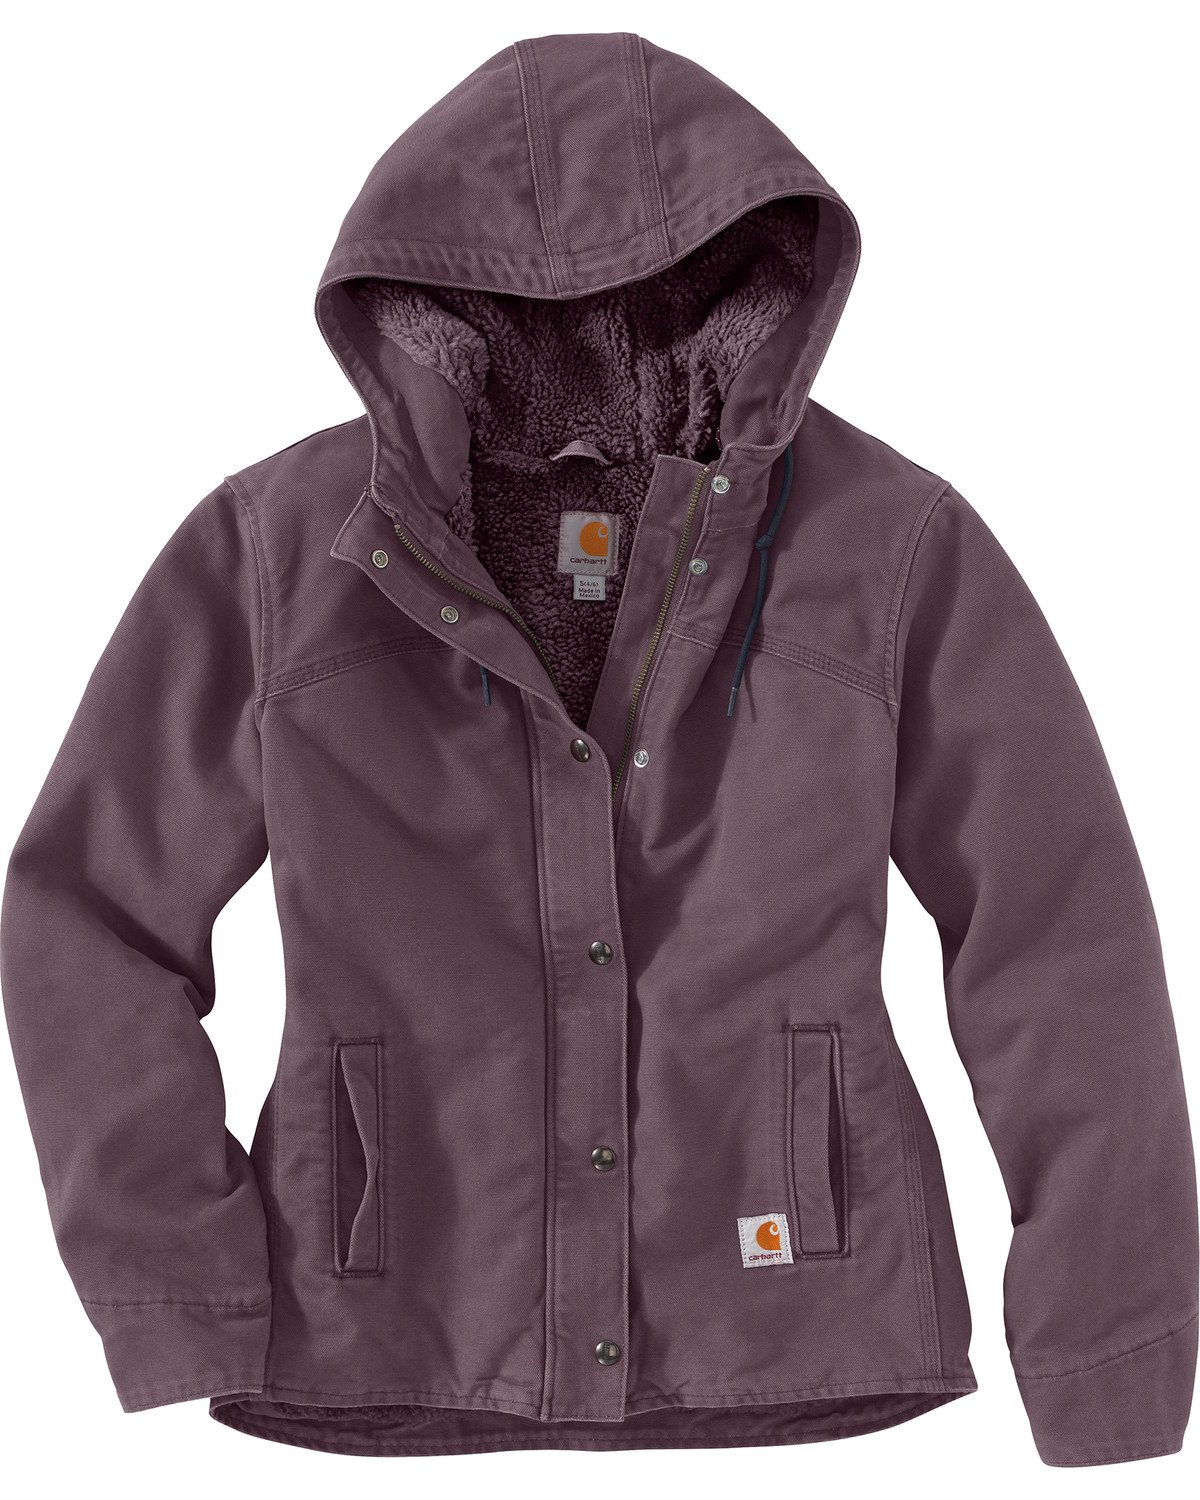 Carhartt coat women